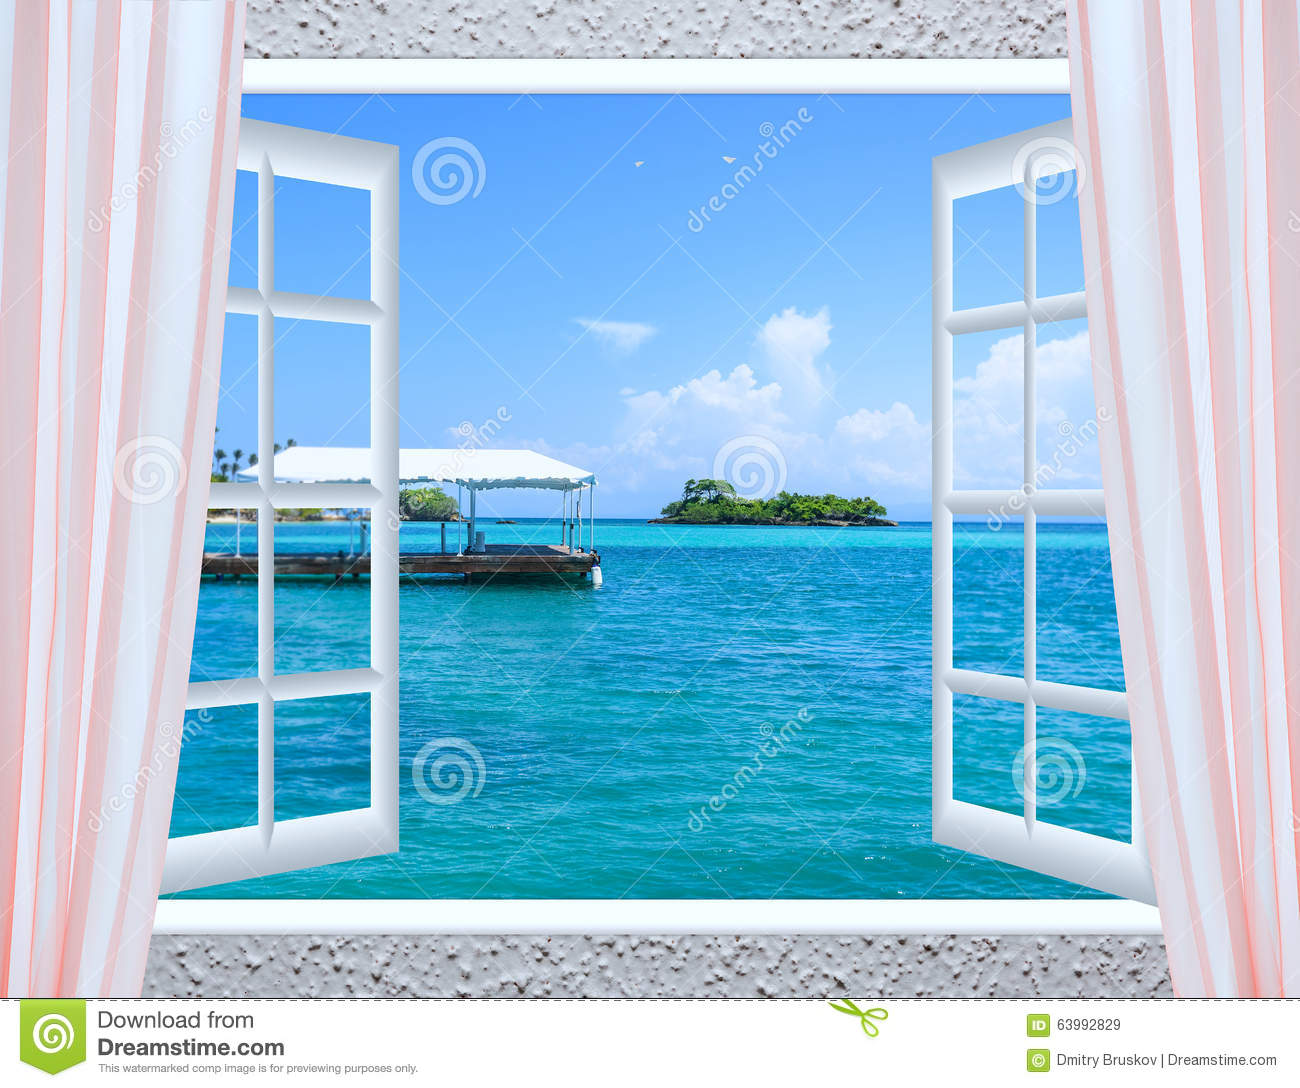 Fen tre ouverte vers la mer image stock image 63992829 for Fenetre dos windows 7